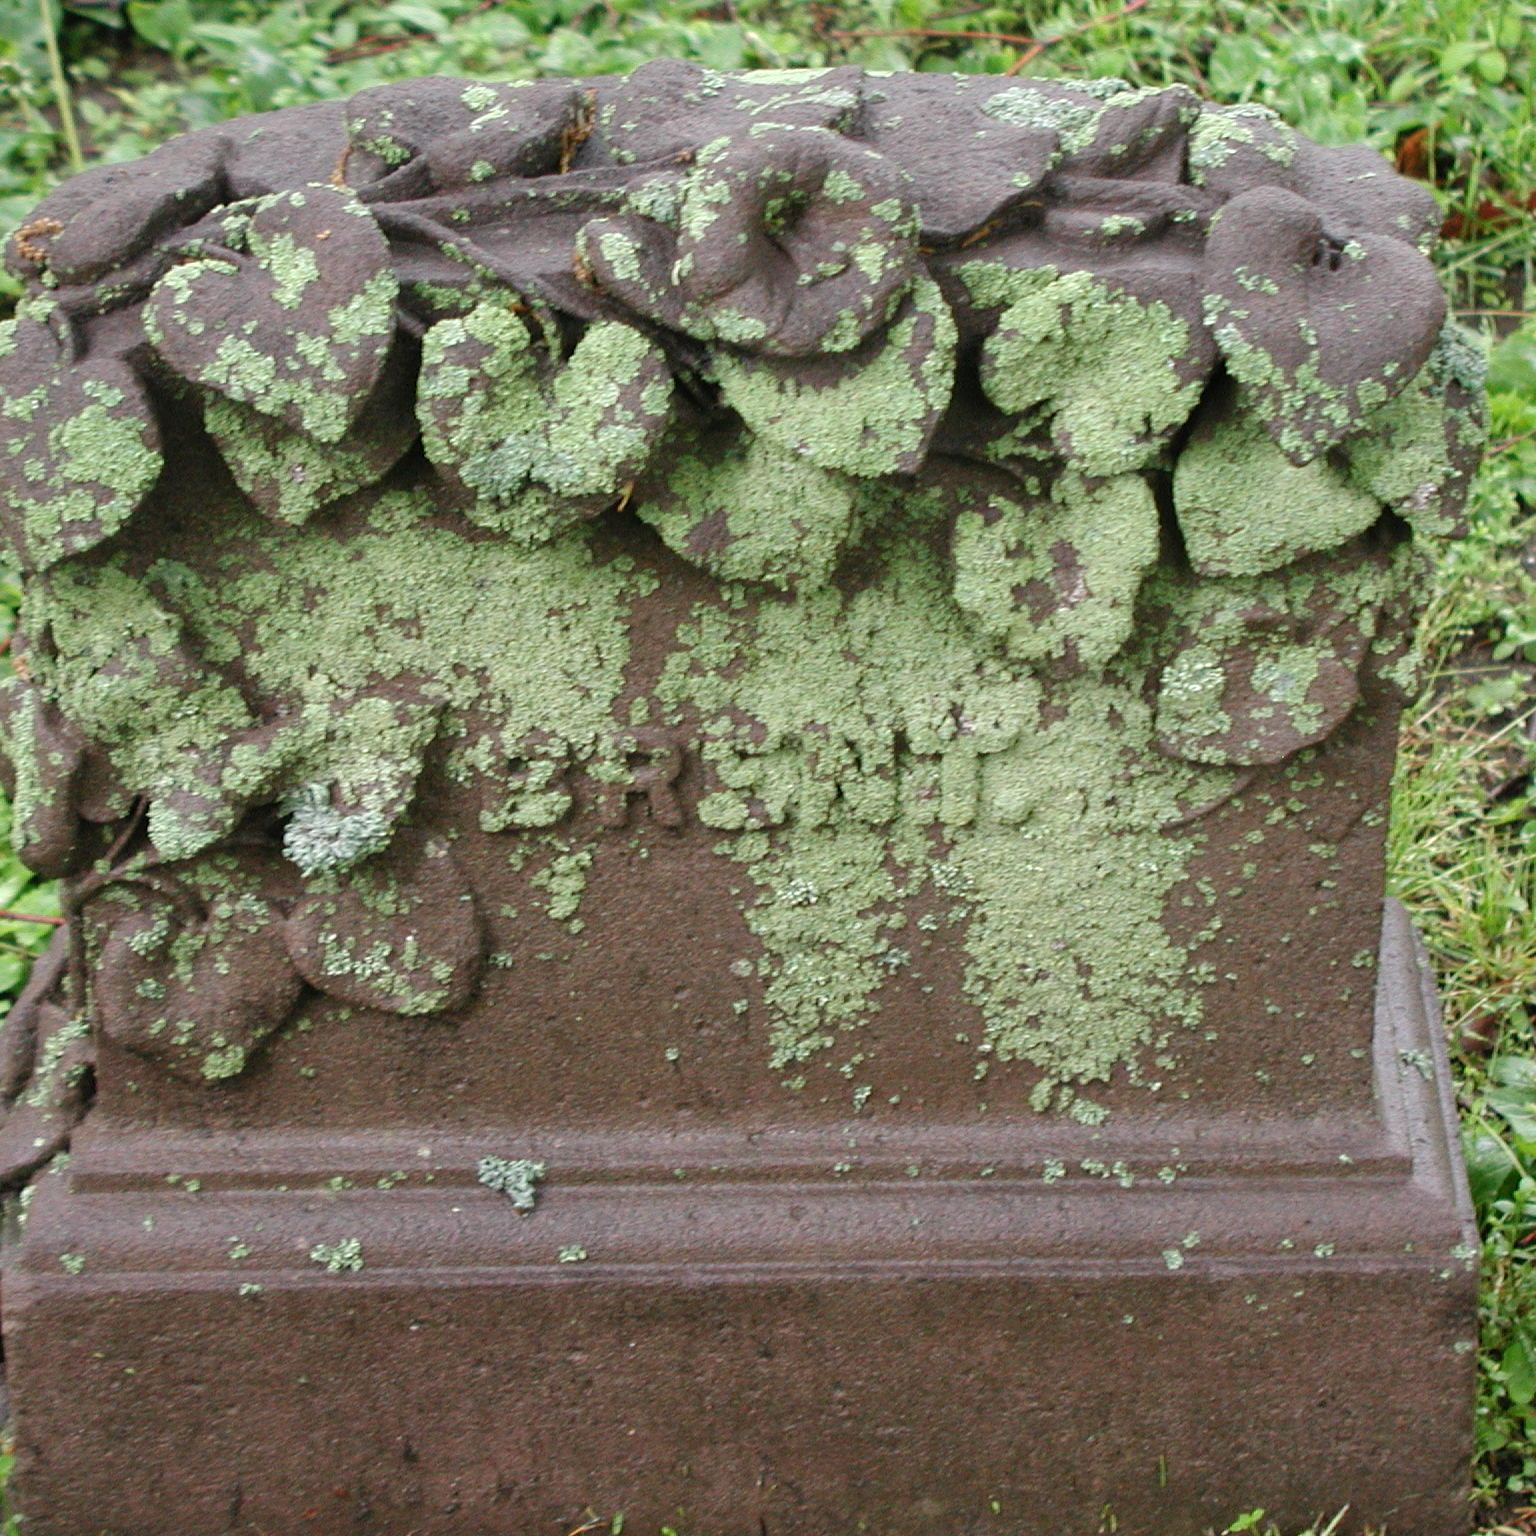 A small brownstone monument carved with leaves and lilies. Bright green lichen covers the surface.